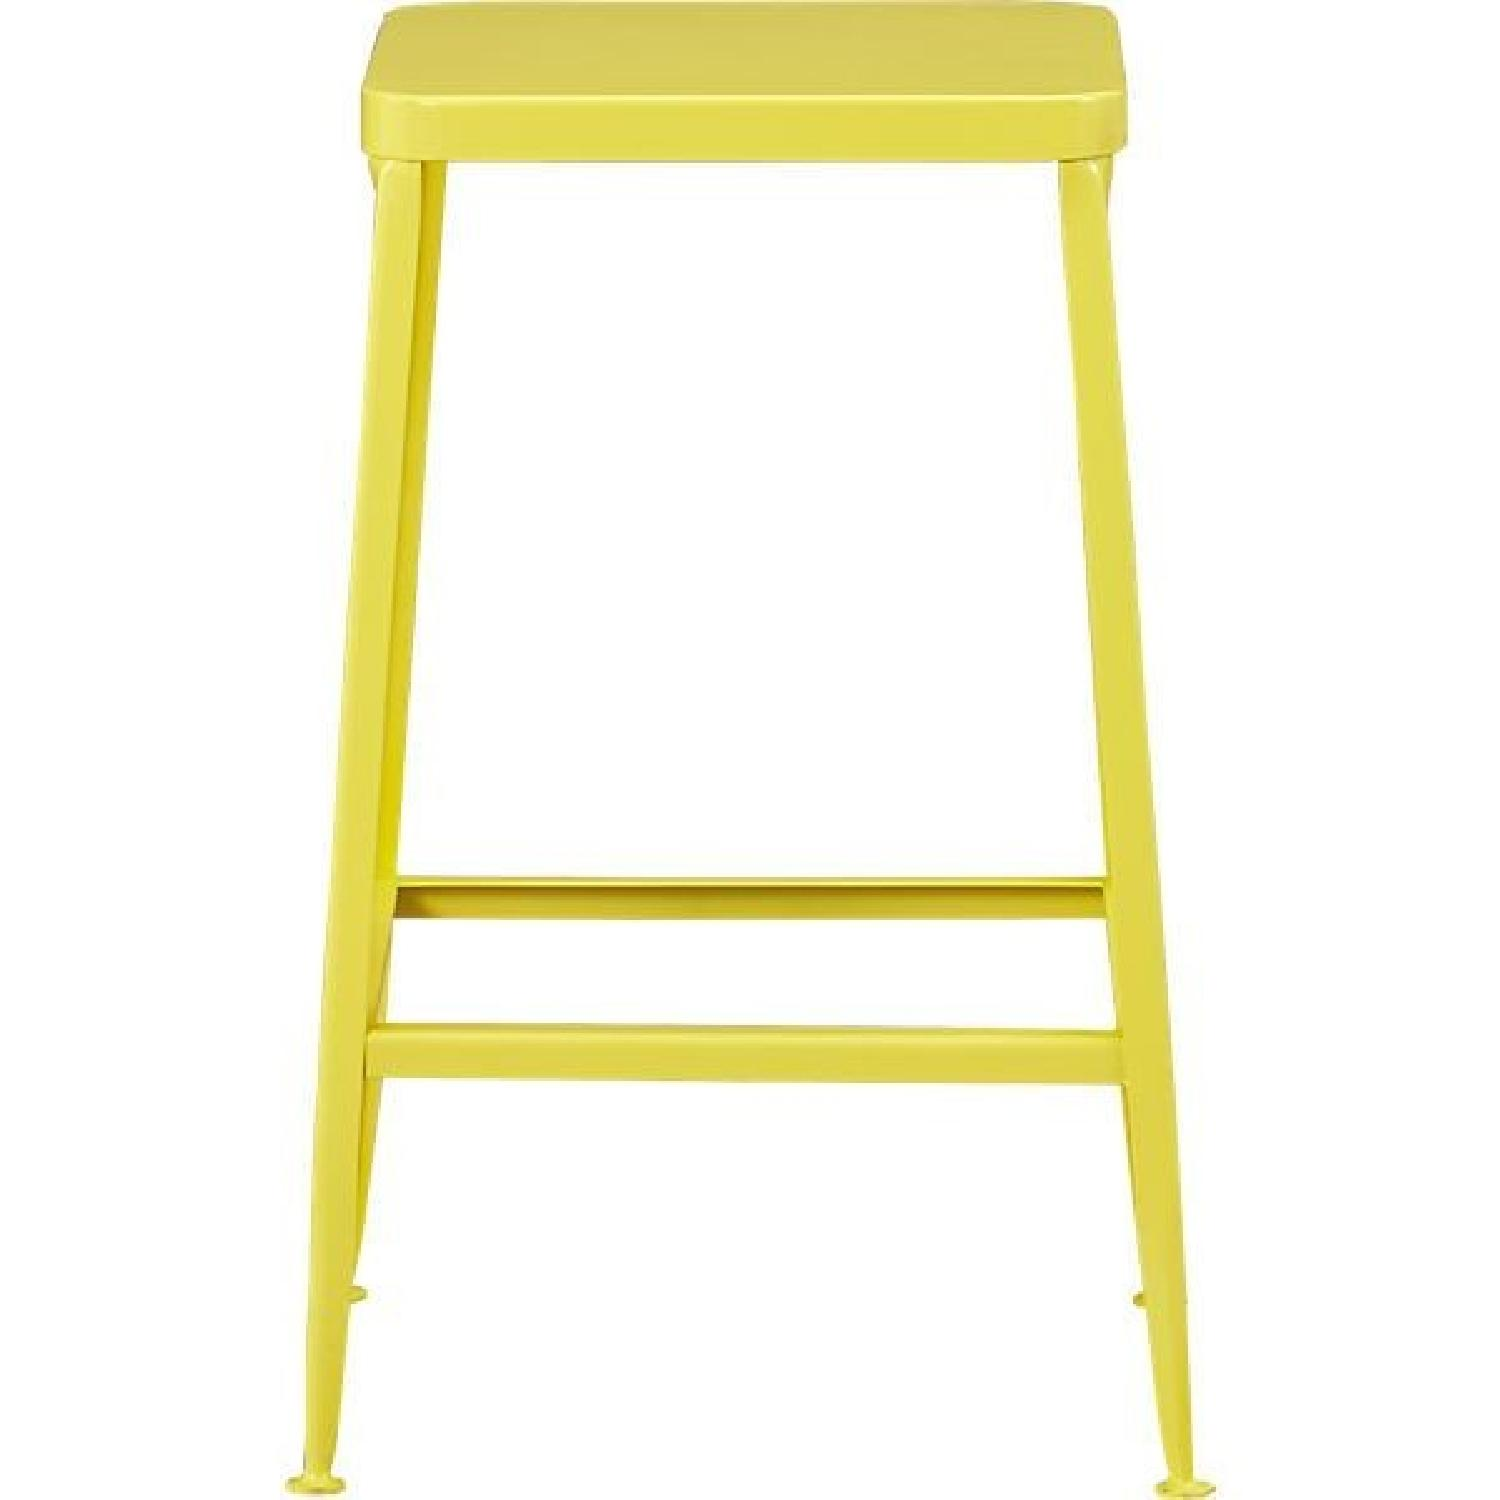 CB2 Flint Bar Stool in Yellow - AptDeco